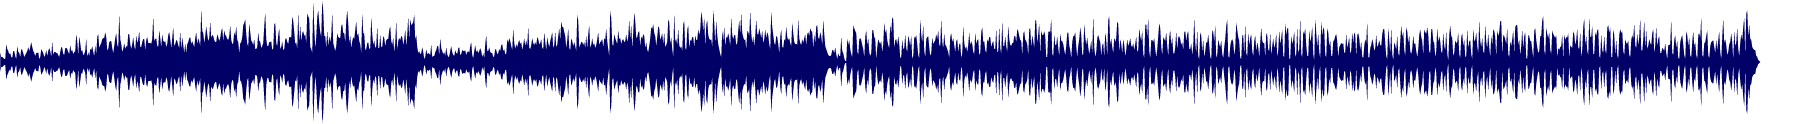 waveform of track #86104